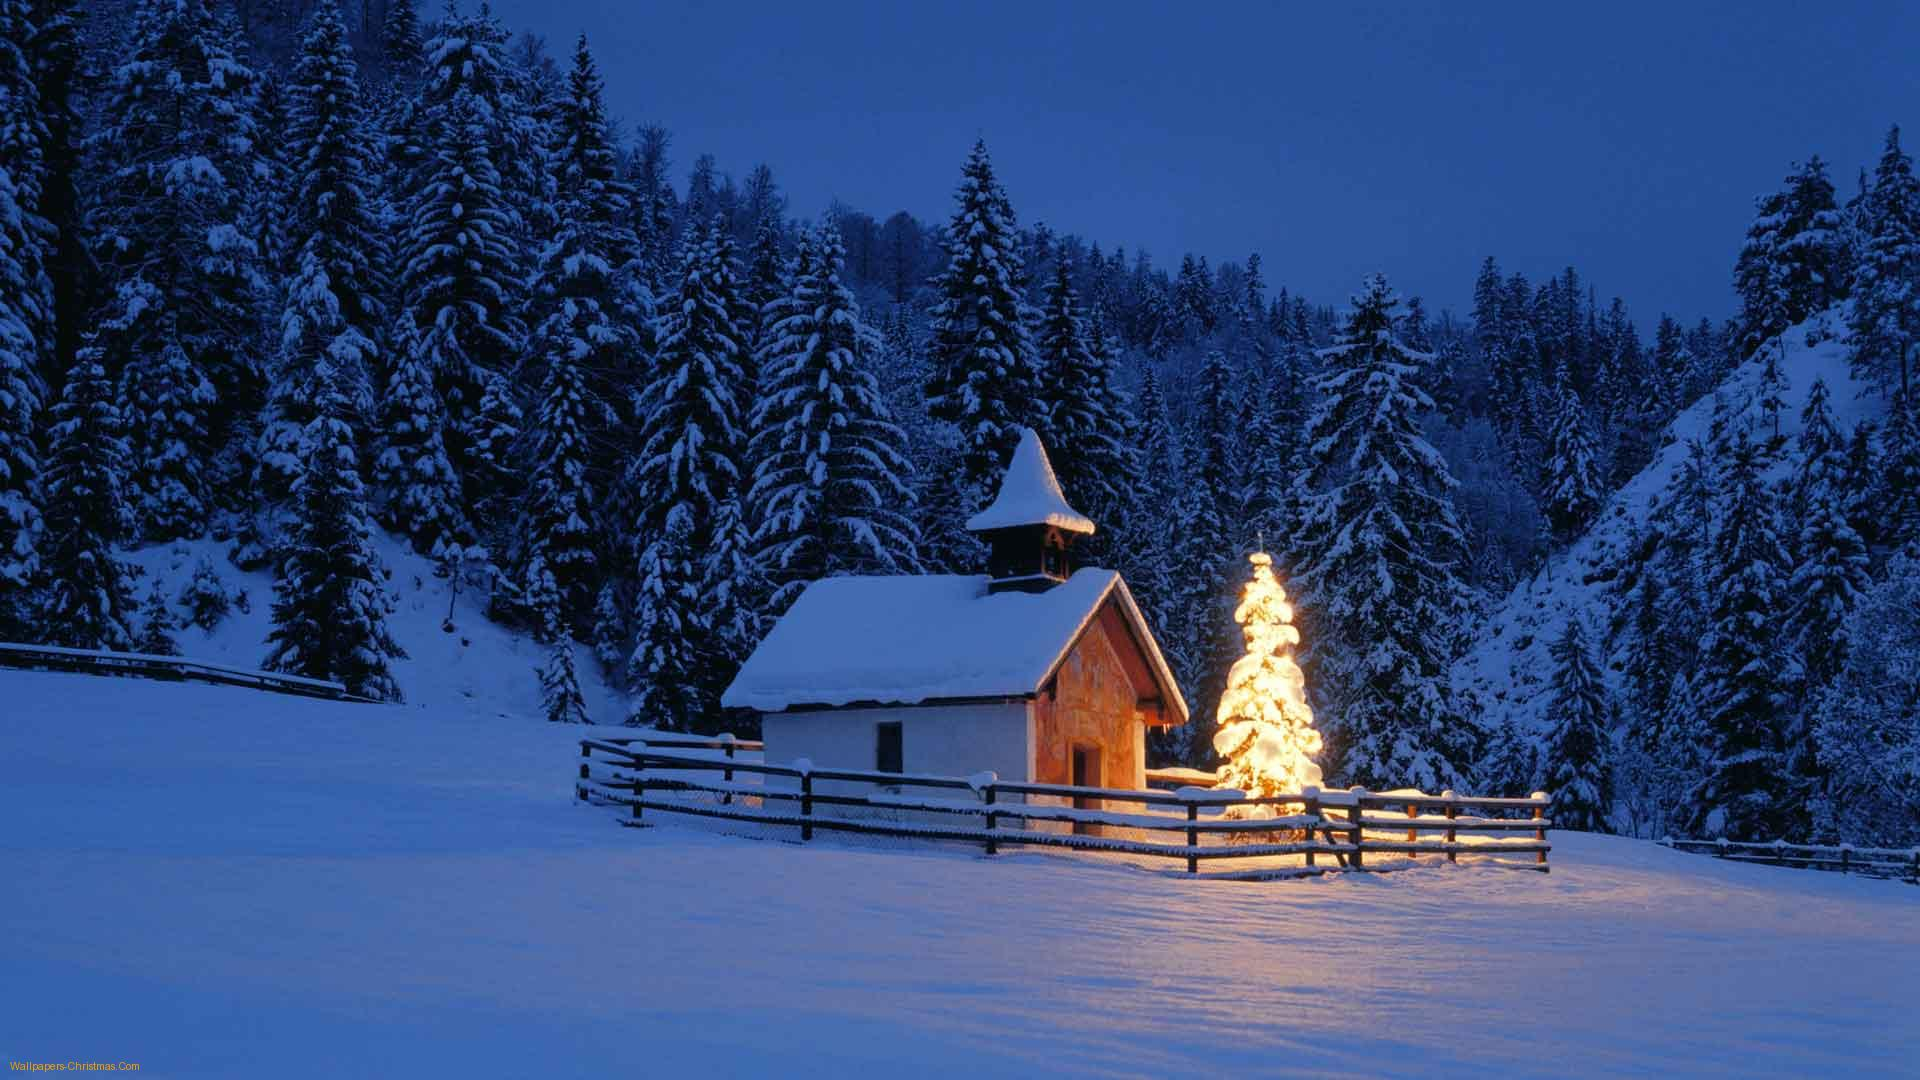 White Christmas 'Unlikely' for Carlow/Kilkenny this year